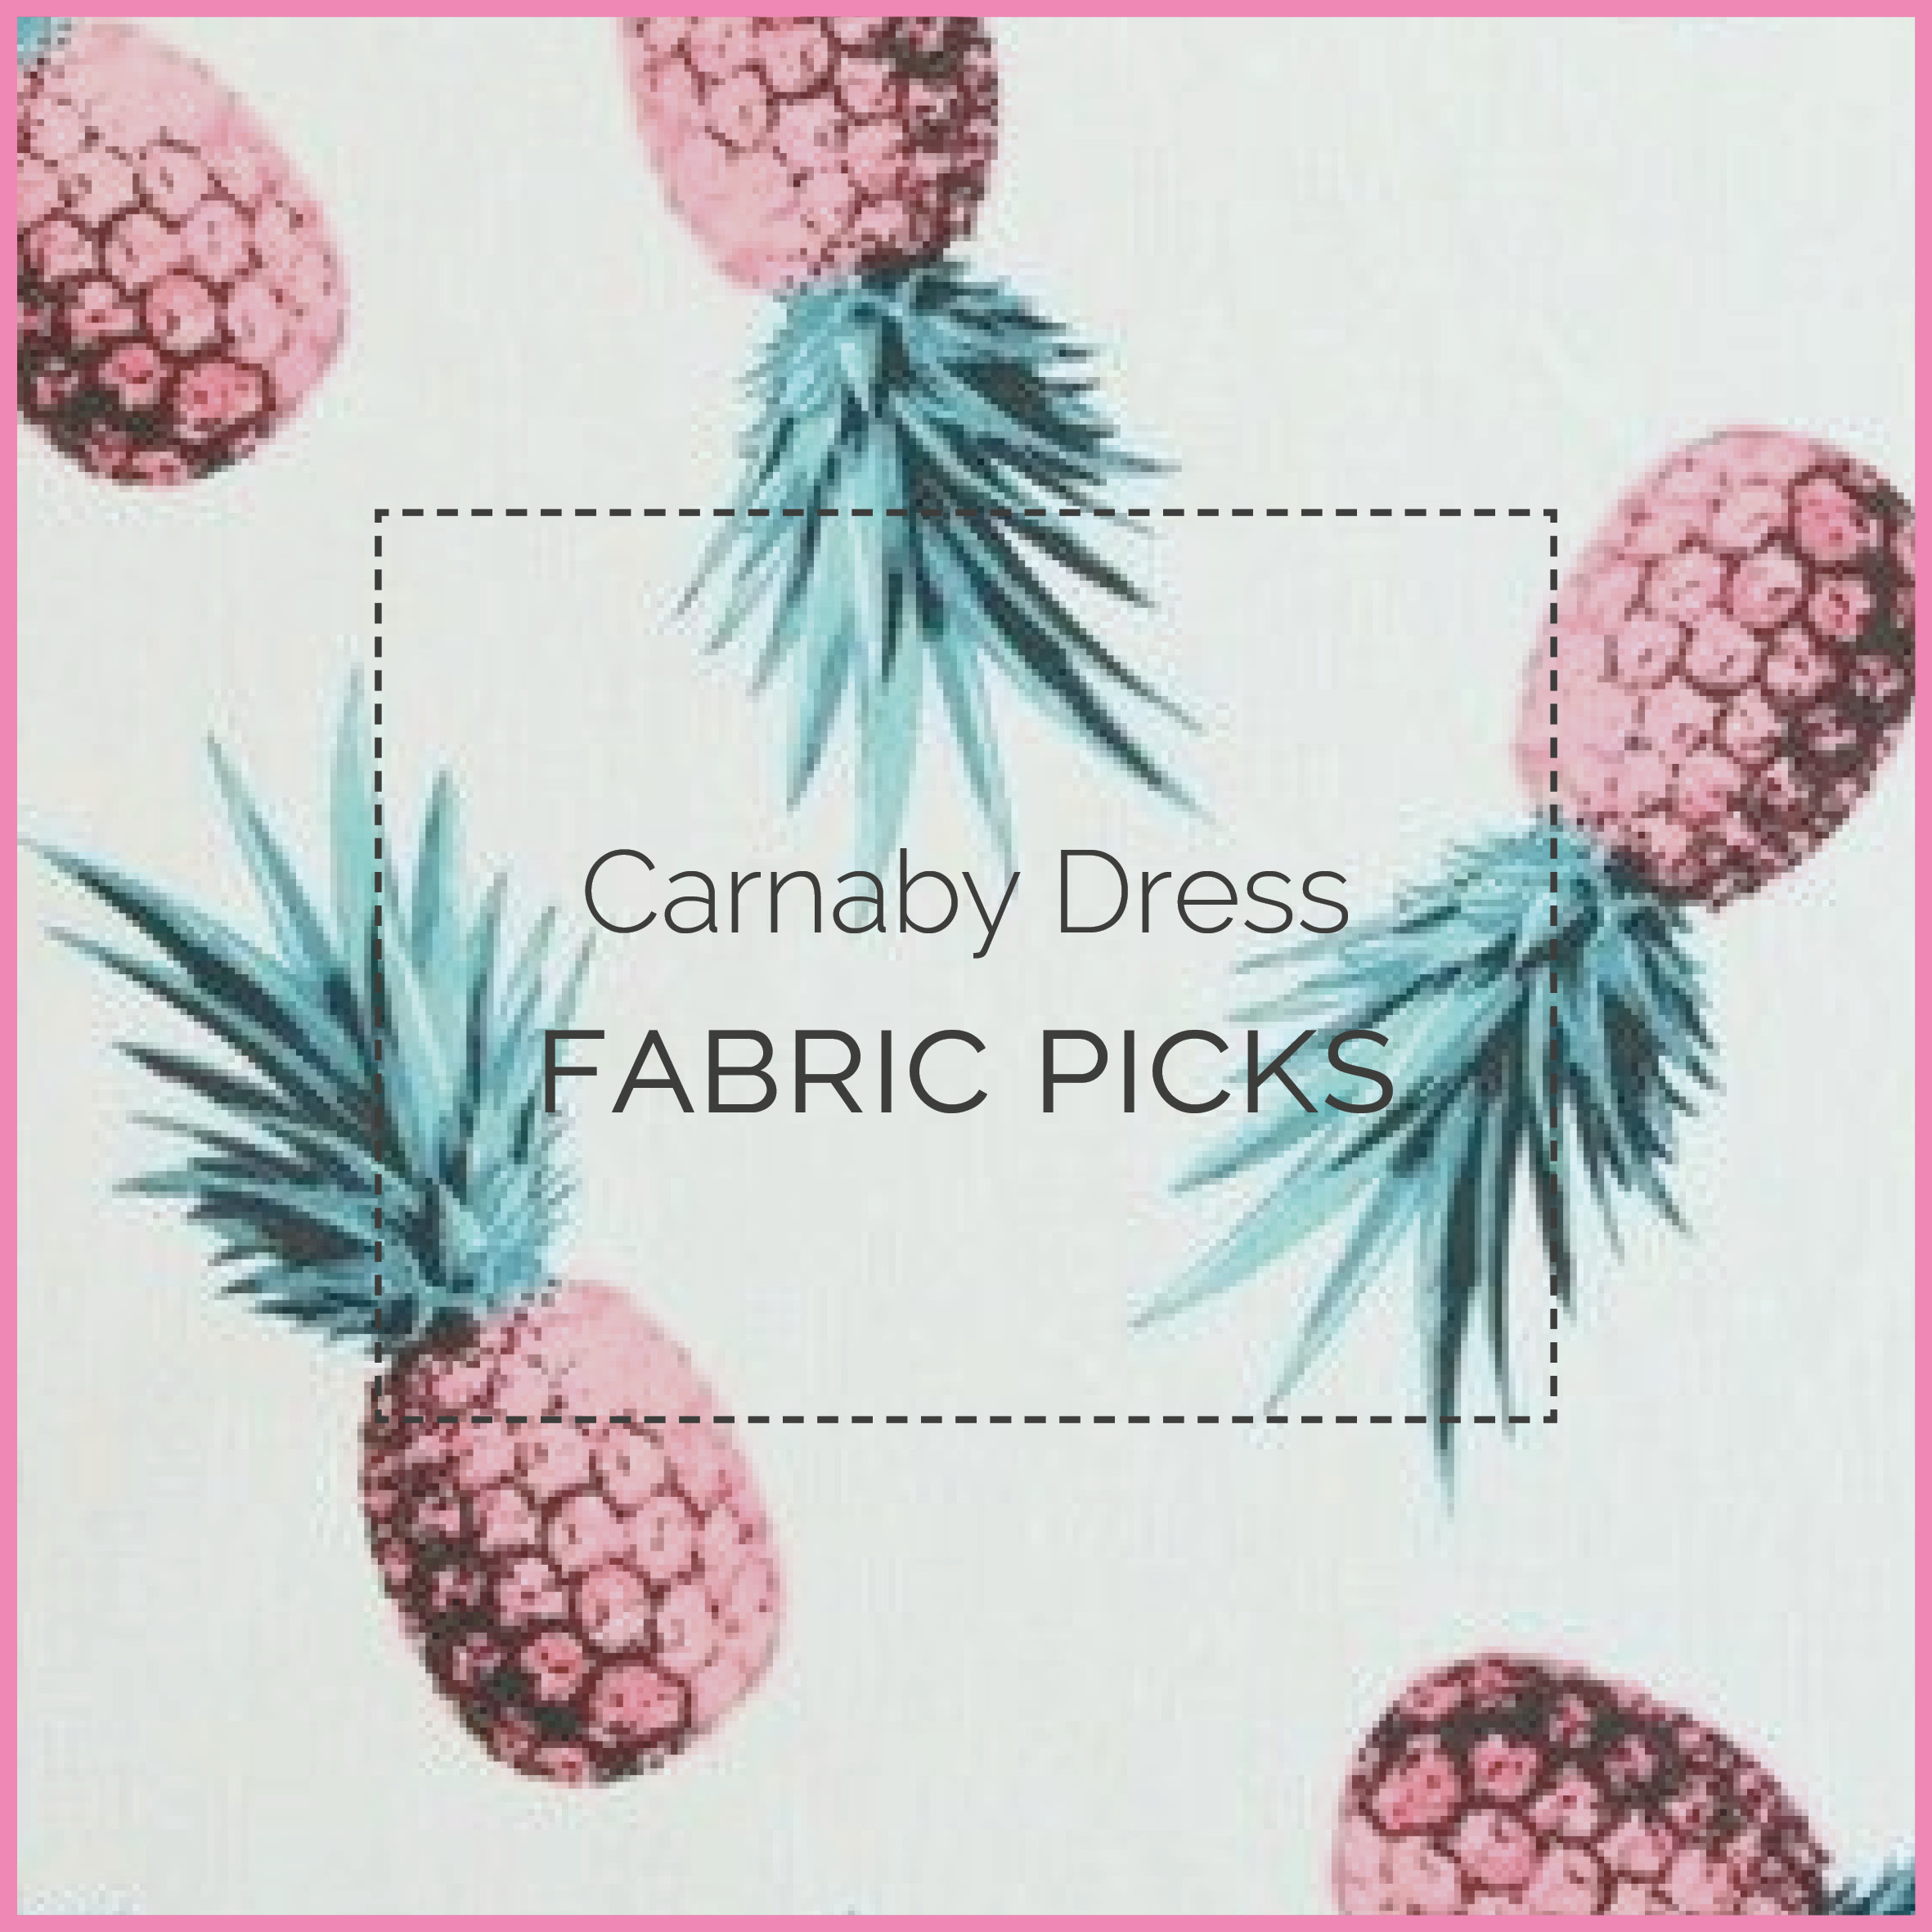 Carnaby Dress fabrics blog header